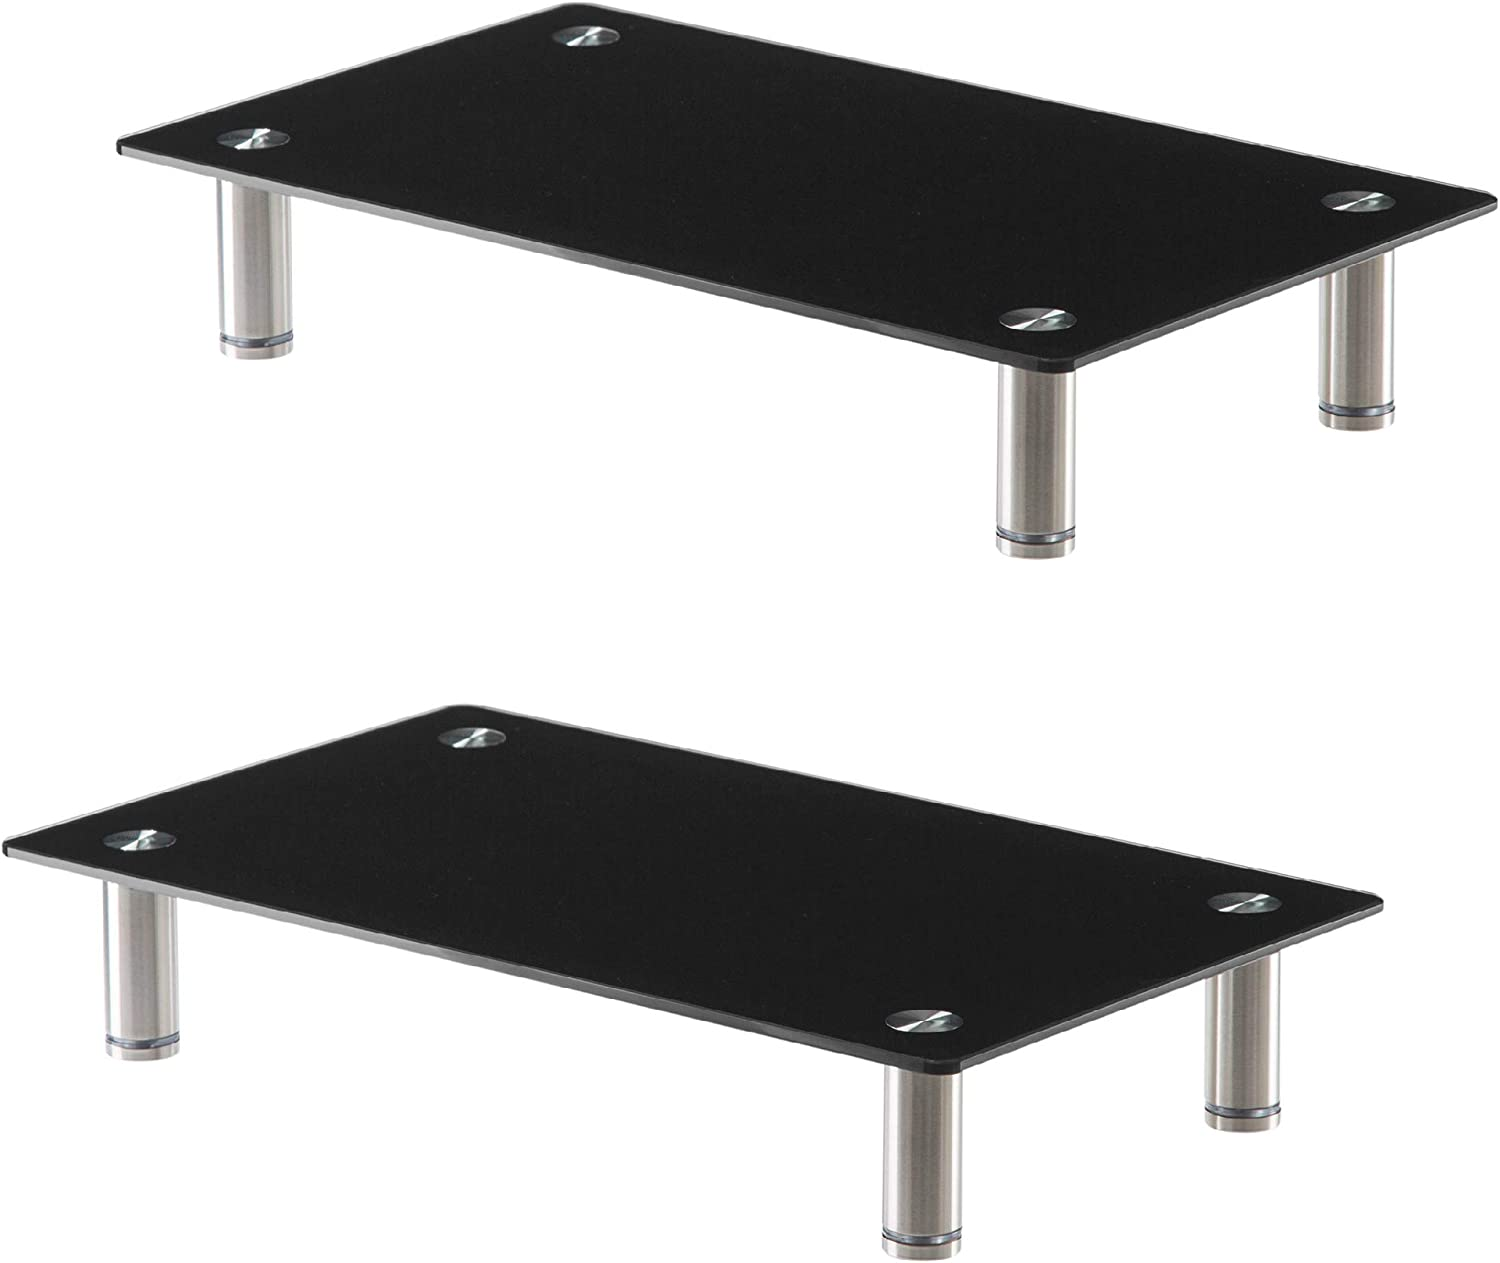 Height Adjustable Glass Monitor Stand 2 Pack - 16 x 9.5 Inch Black Desktop Risers for Computer Monitors, Laptop, TV, Printer & More